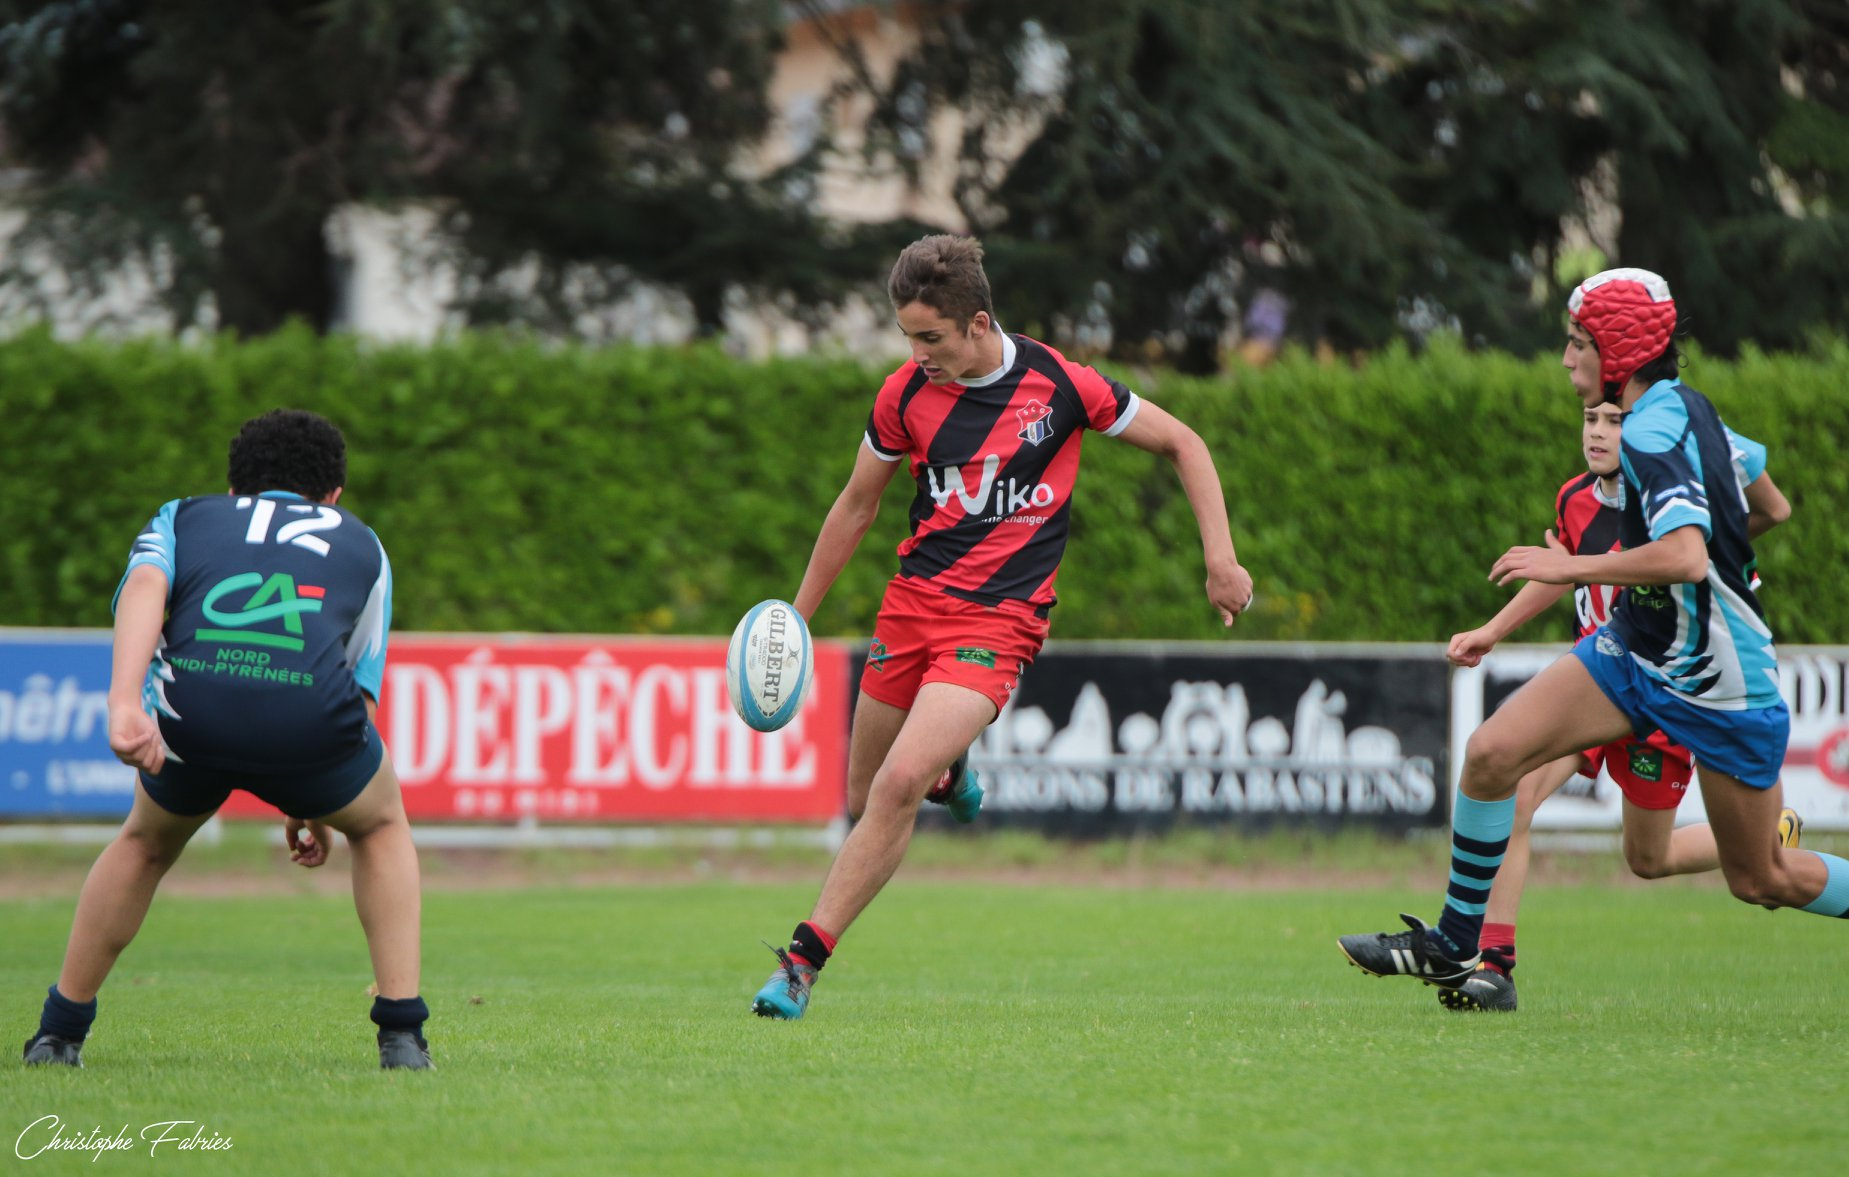 http://scg-rugby.com/wp-content/uploads/2018/05/pavois-15.jpg